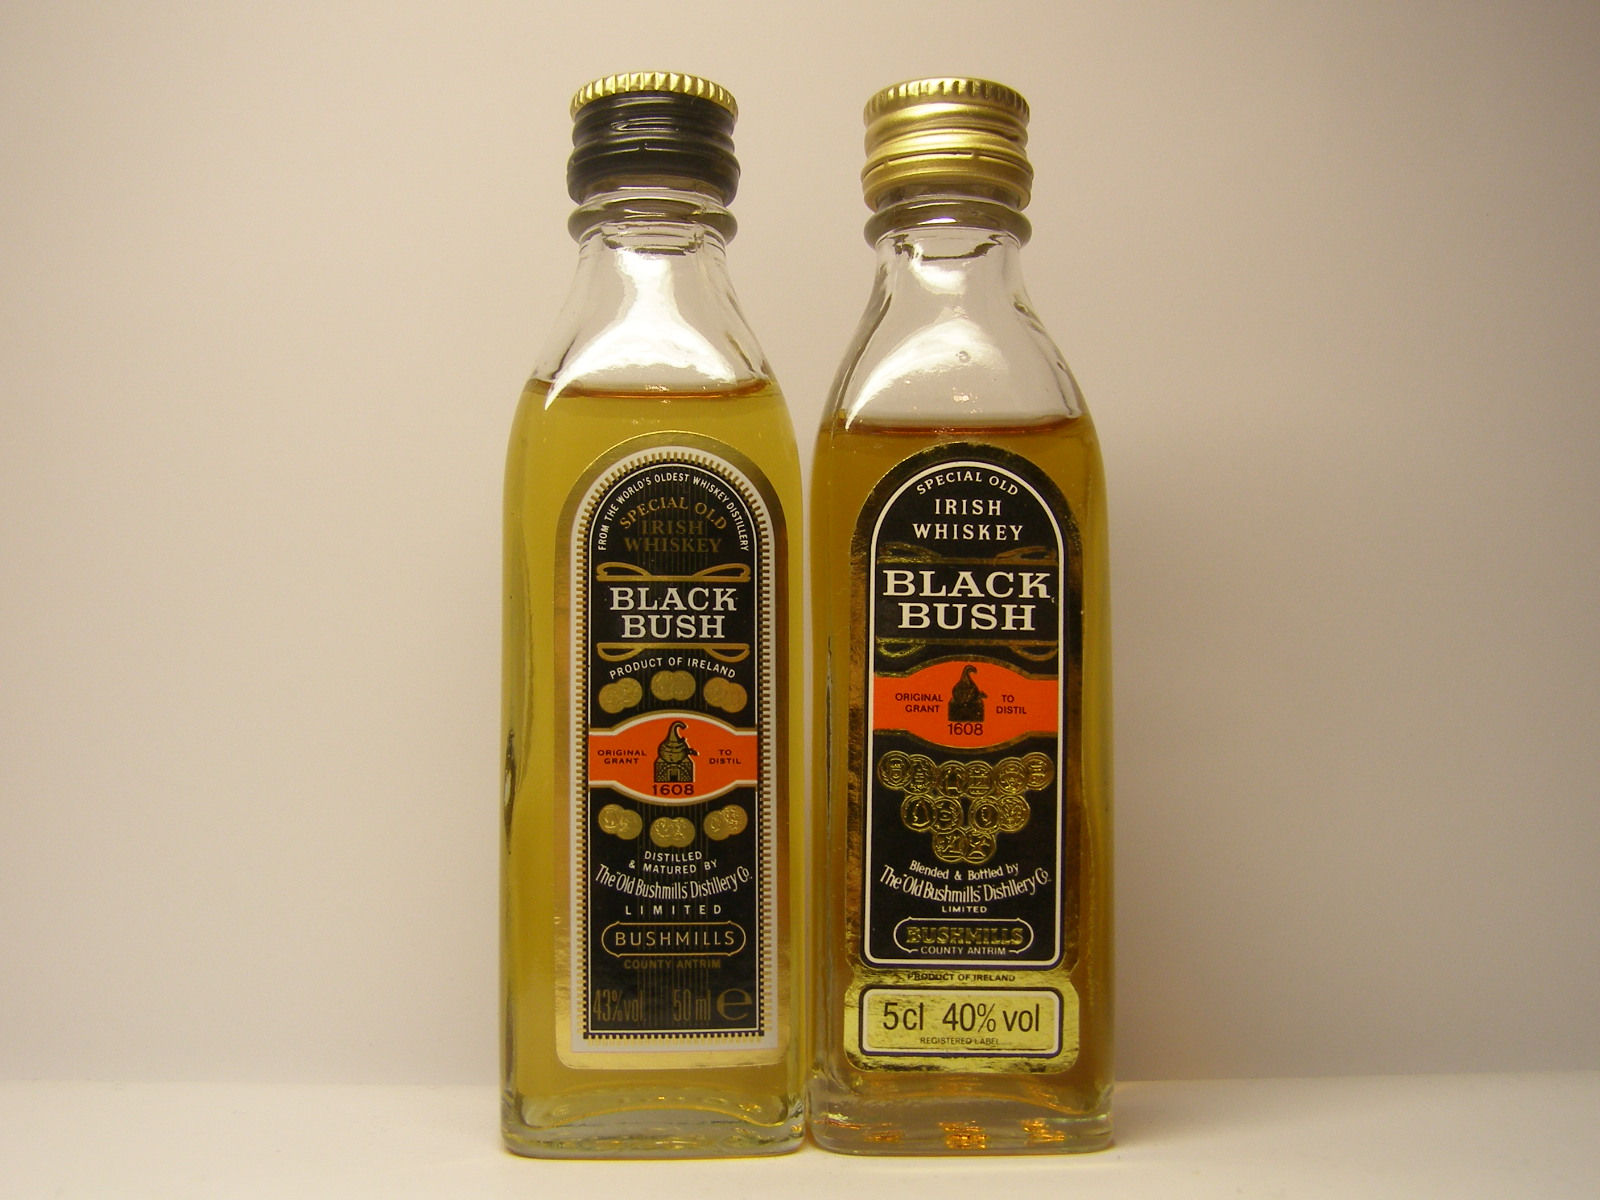 BUSHMILLS BLACK BUSH IW